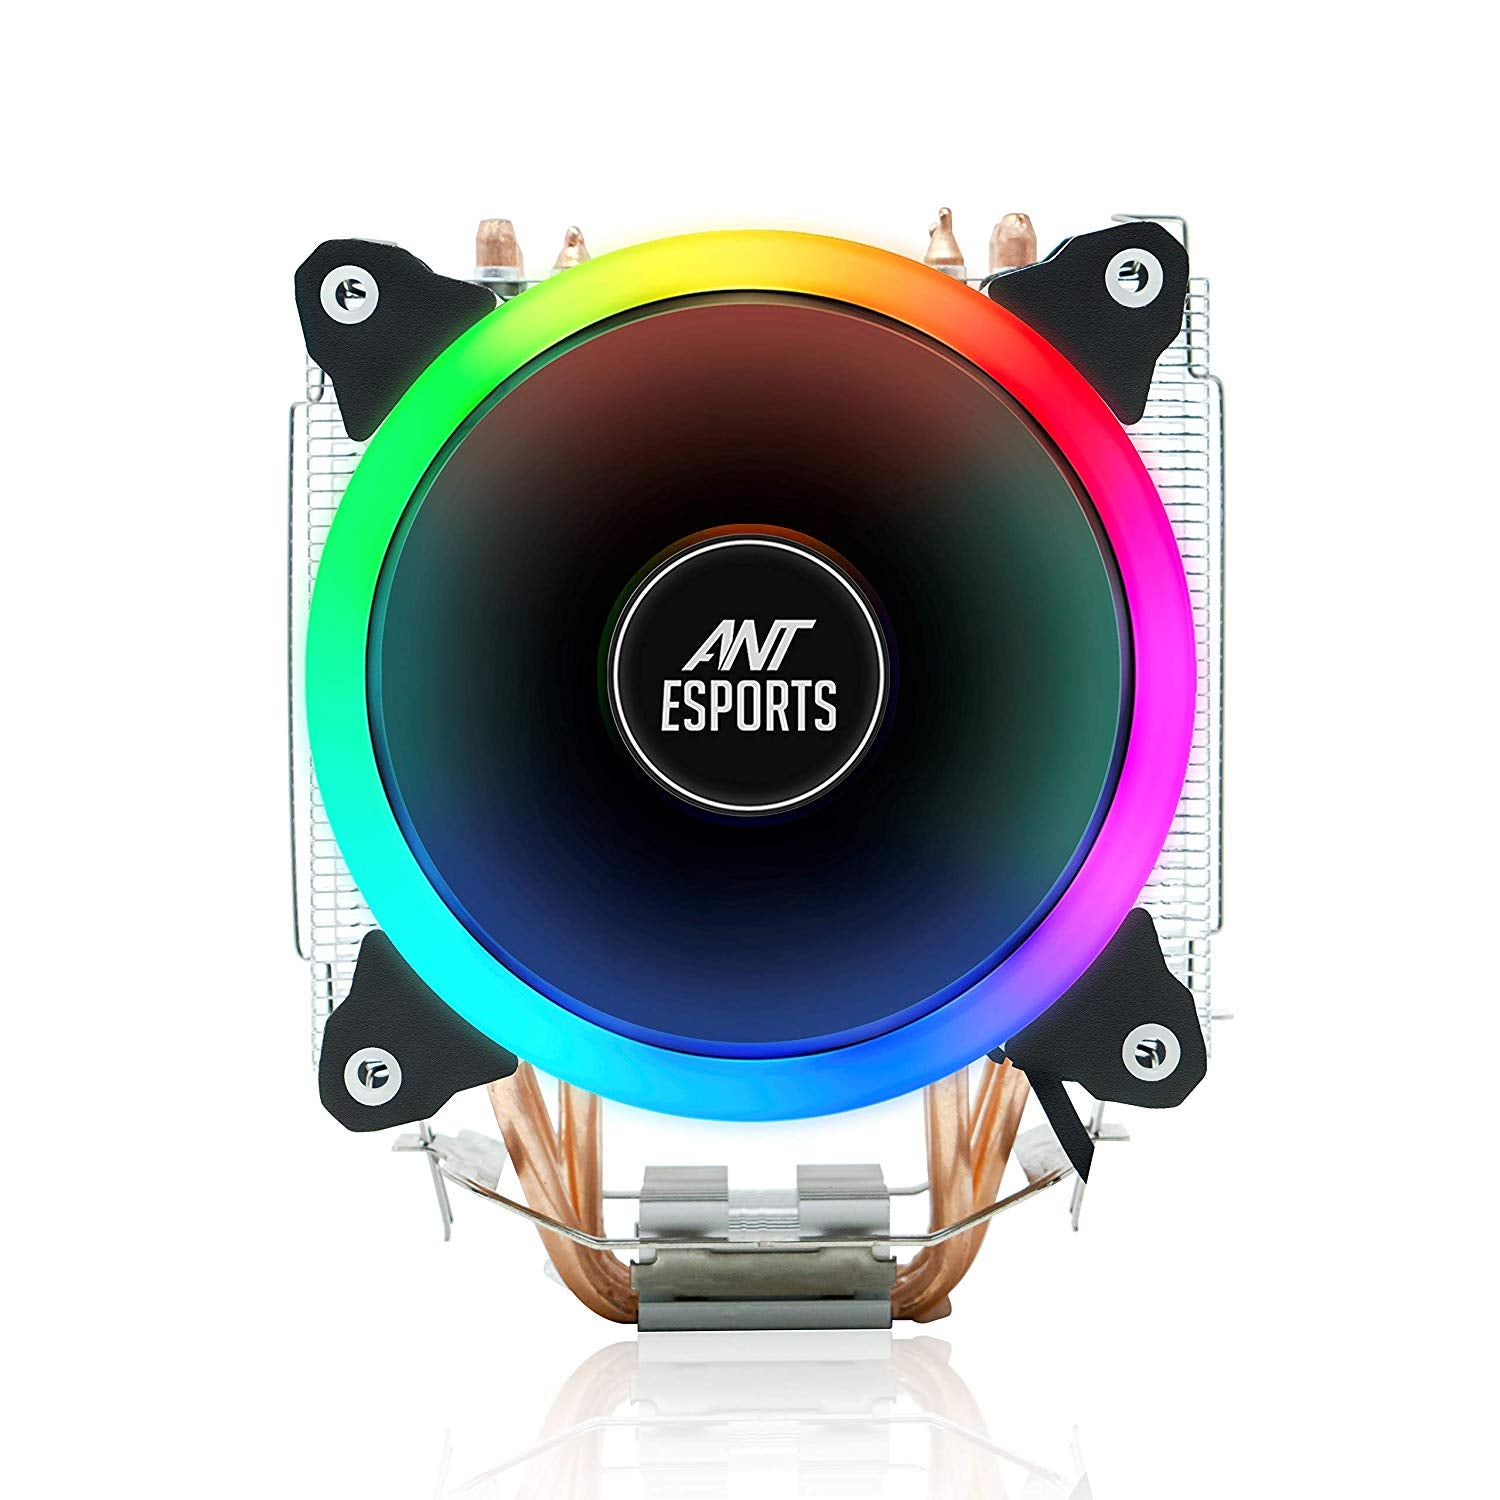 Ant Esports ICE-C612 with RGB LED PWM CPU